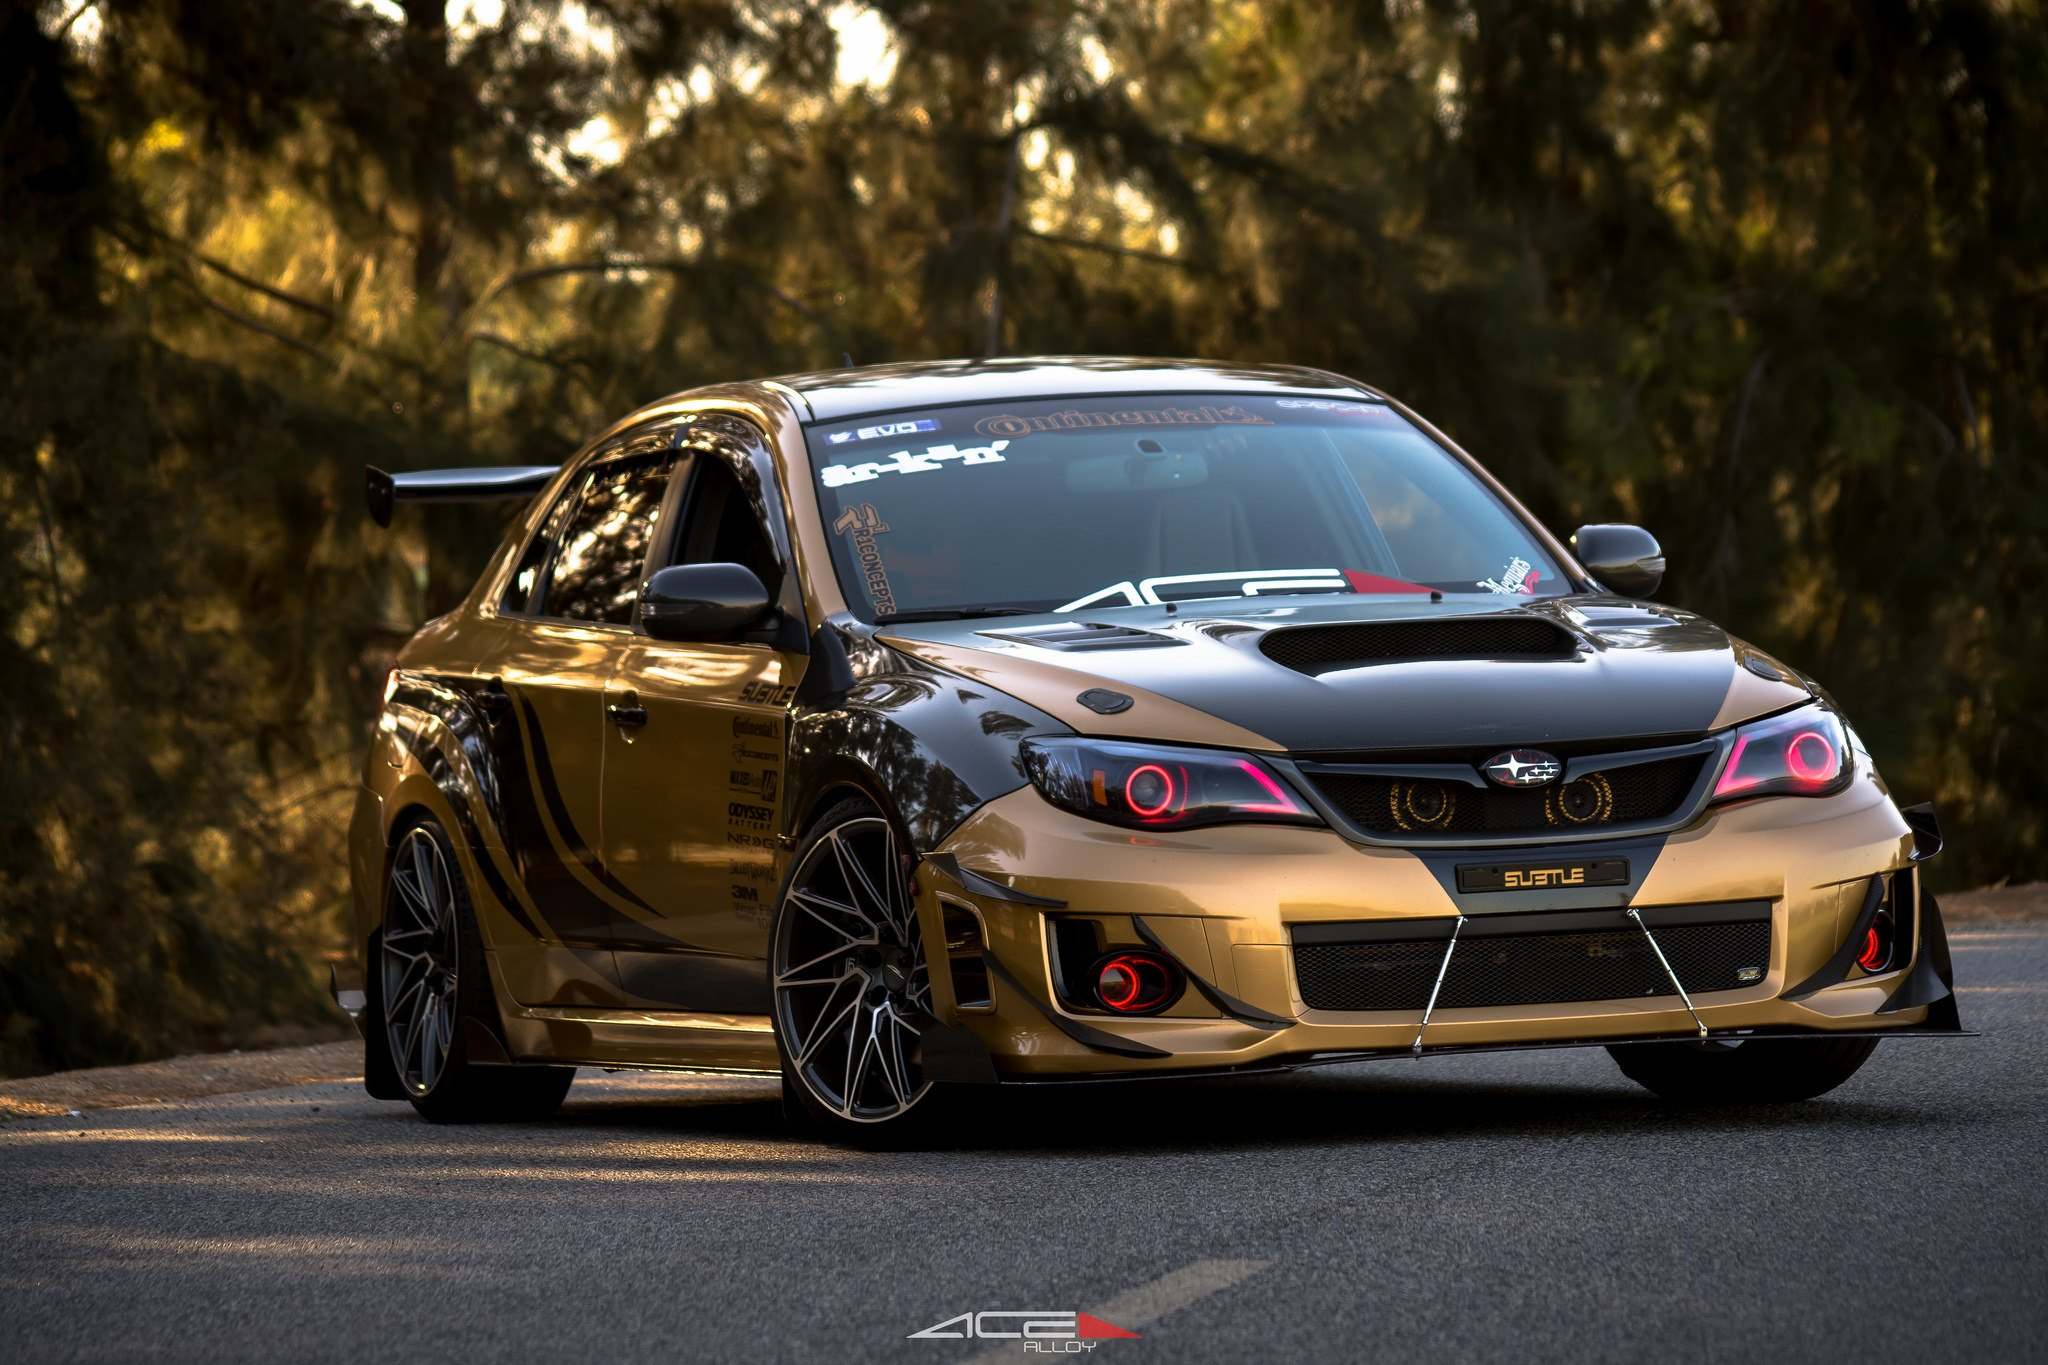 beast mode on custom gold debadged subaru wrx gallery. Black Bedroom Furniture Sets. Home Design Ideas